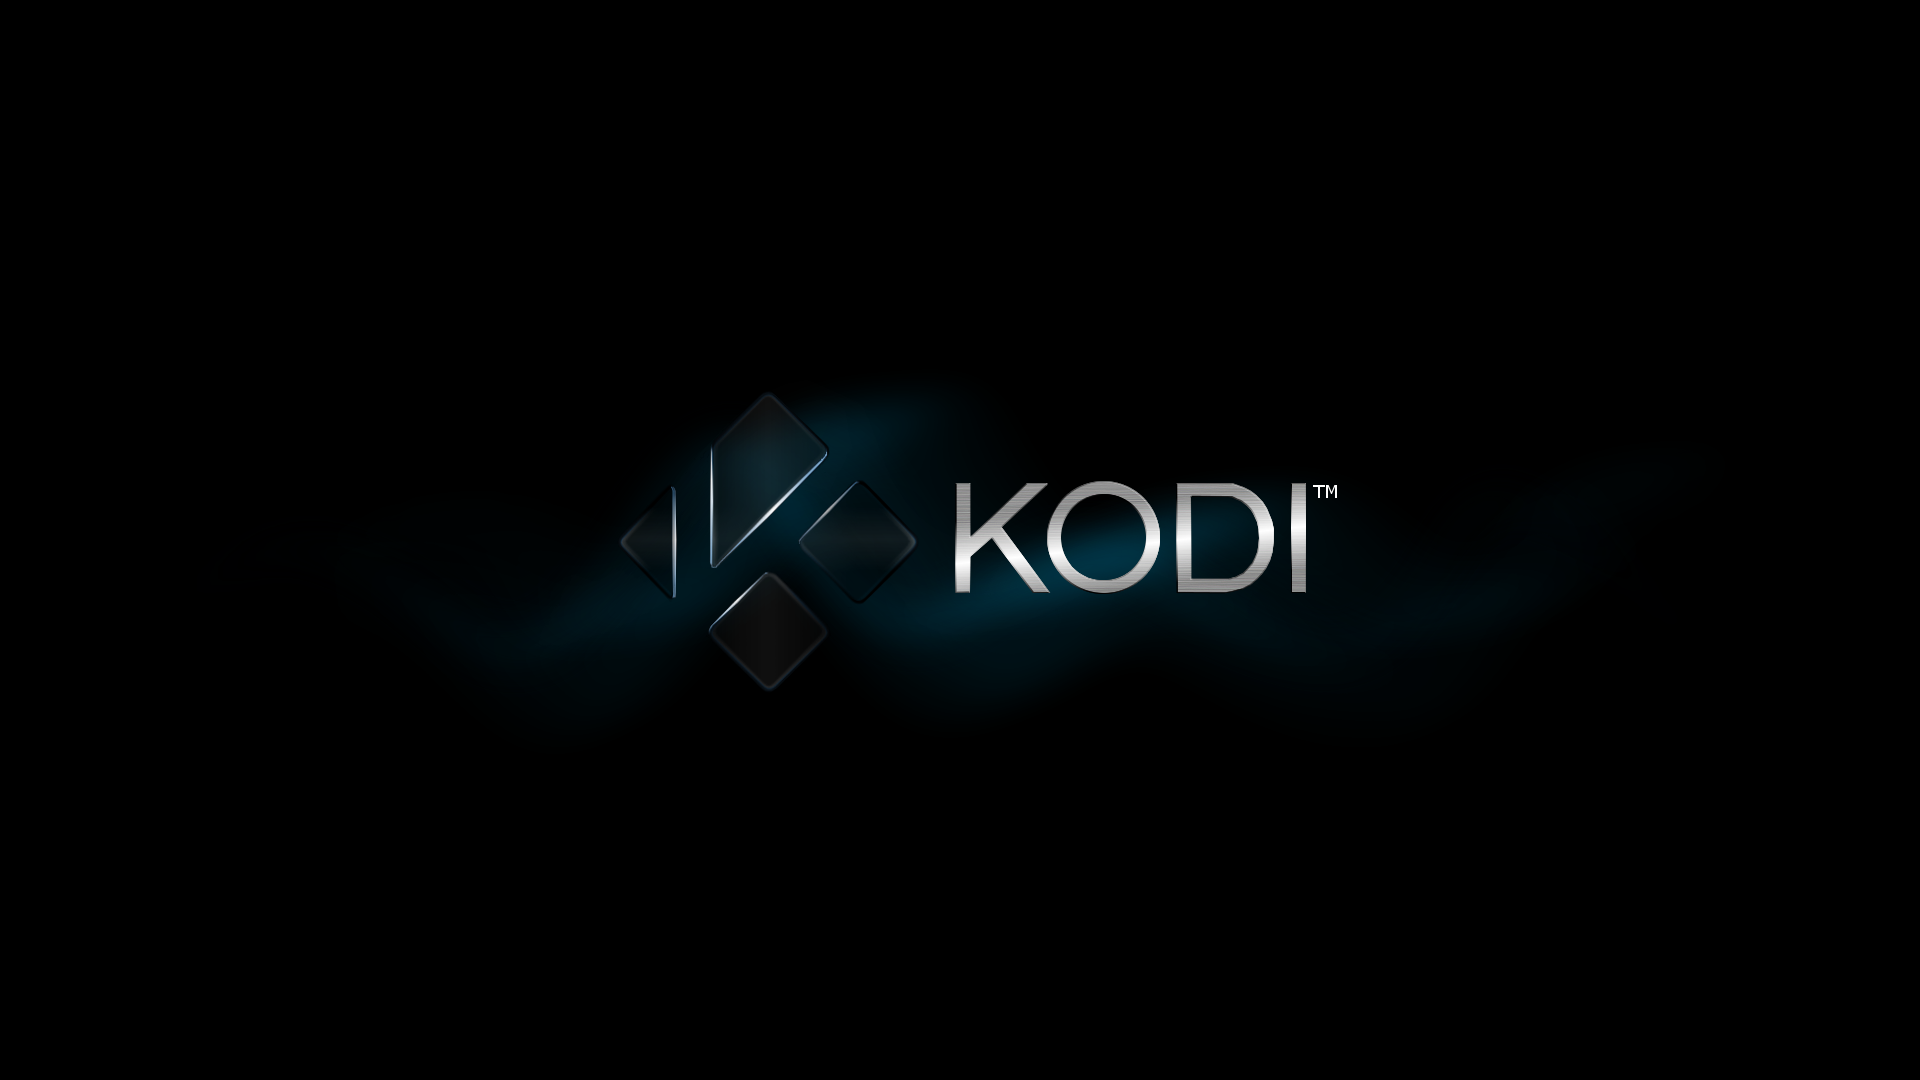 Kodi fanart and wallpaper -  Image 16911564641_6ba85e26b7_o Png